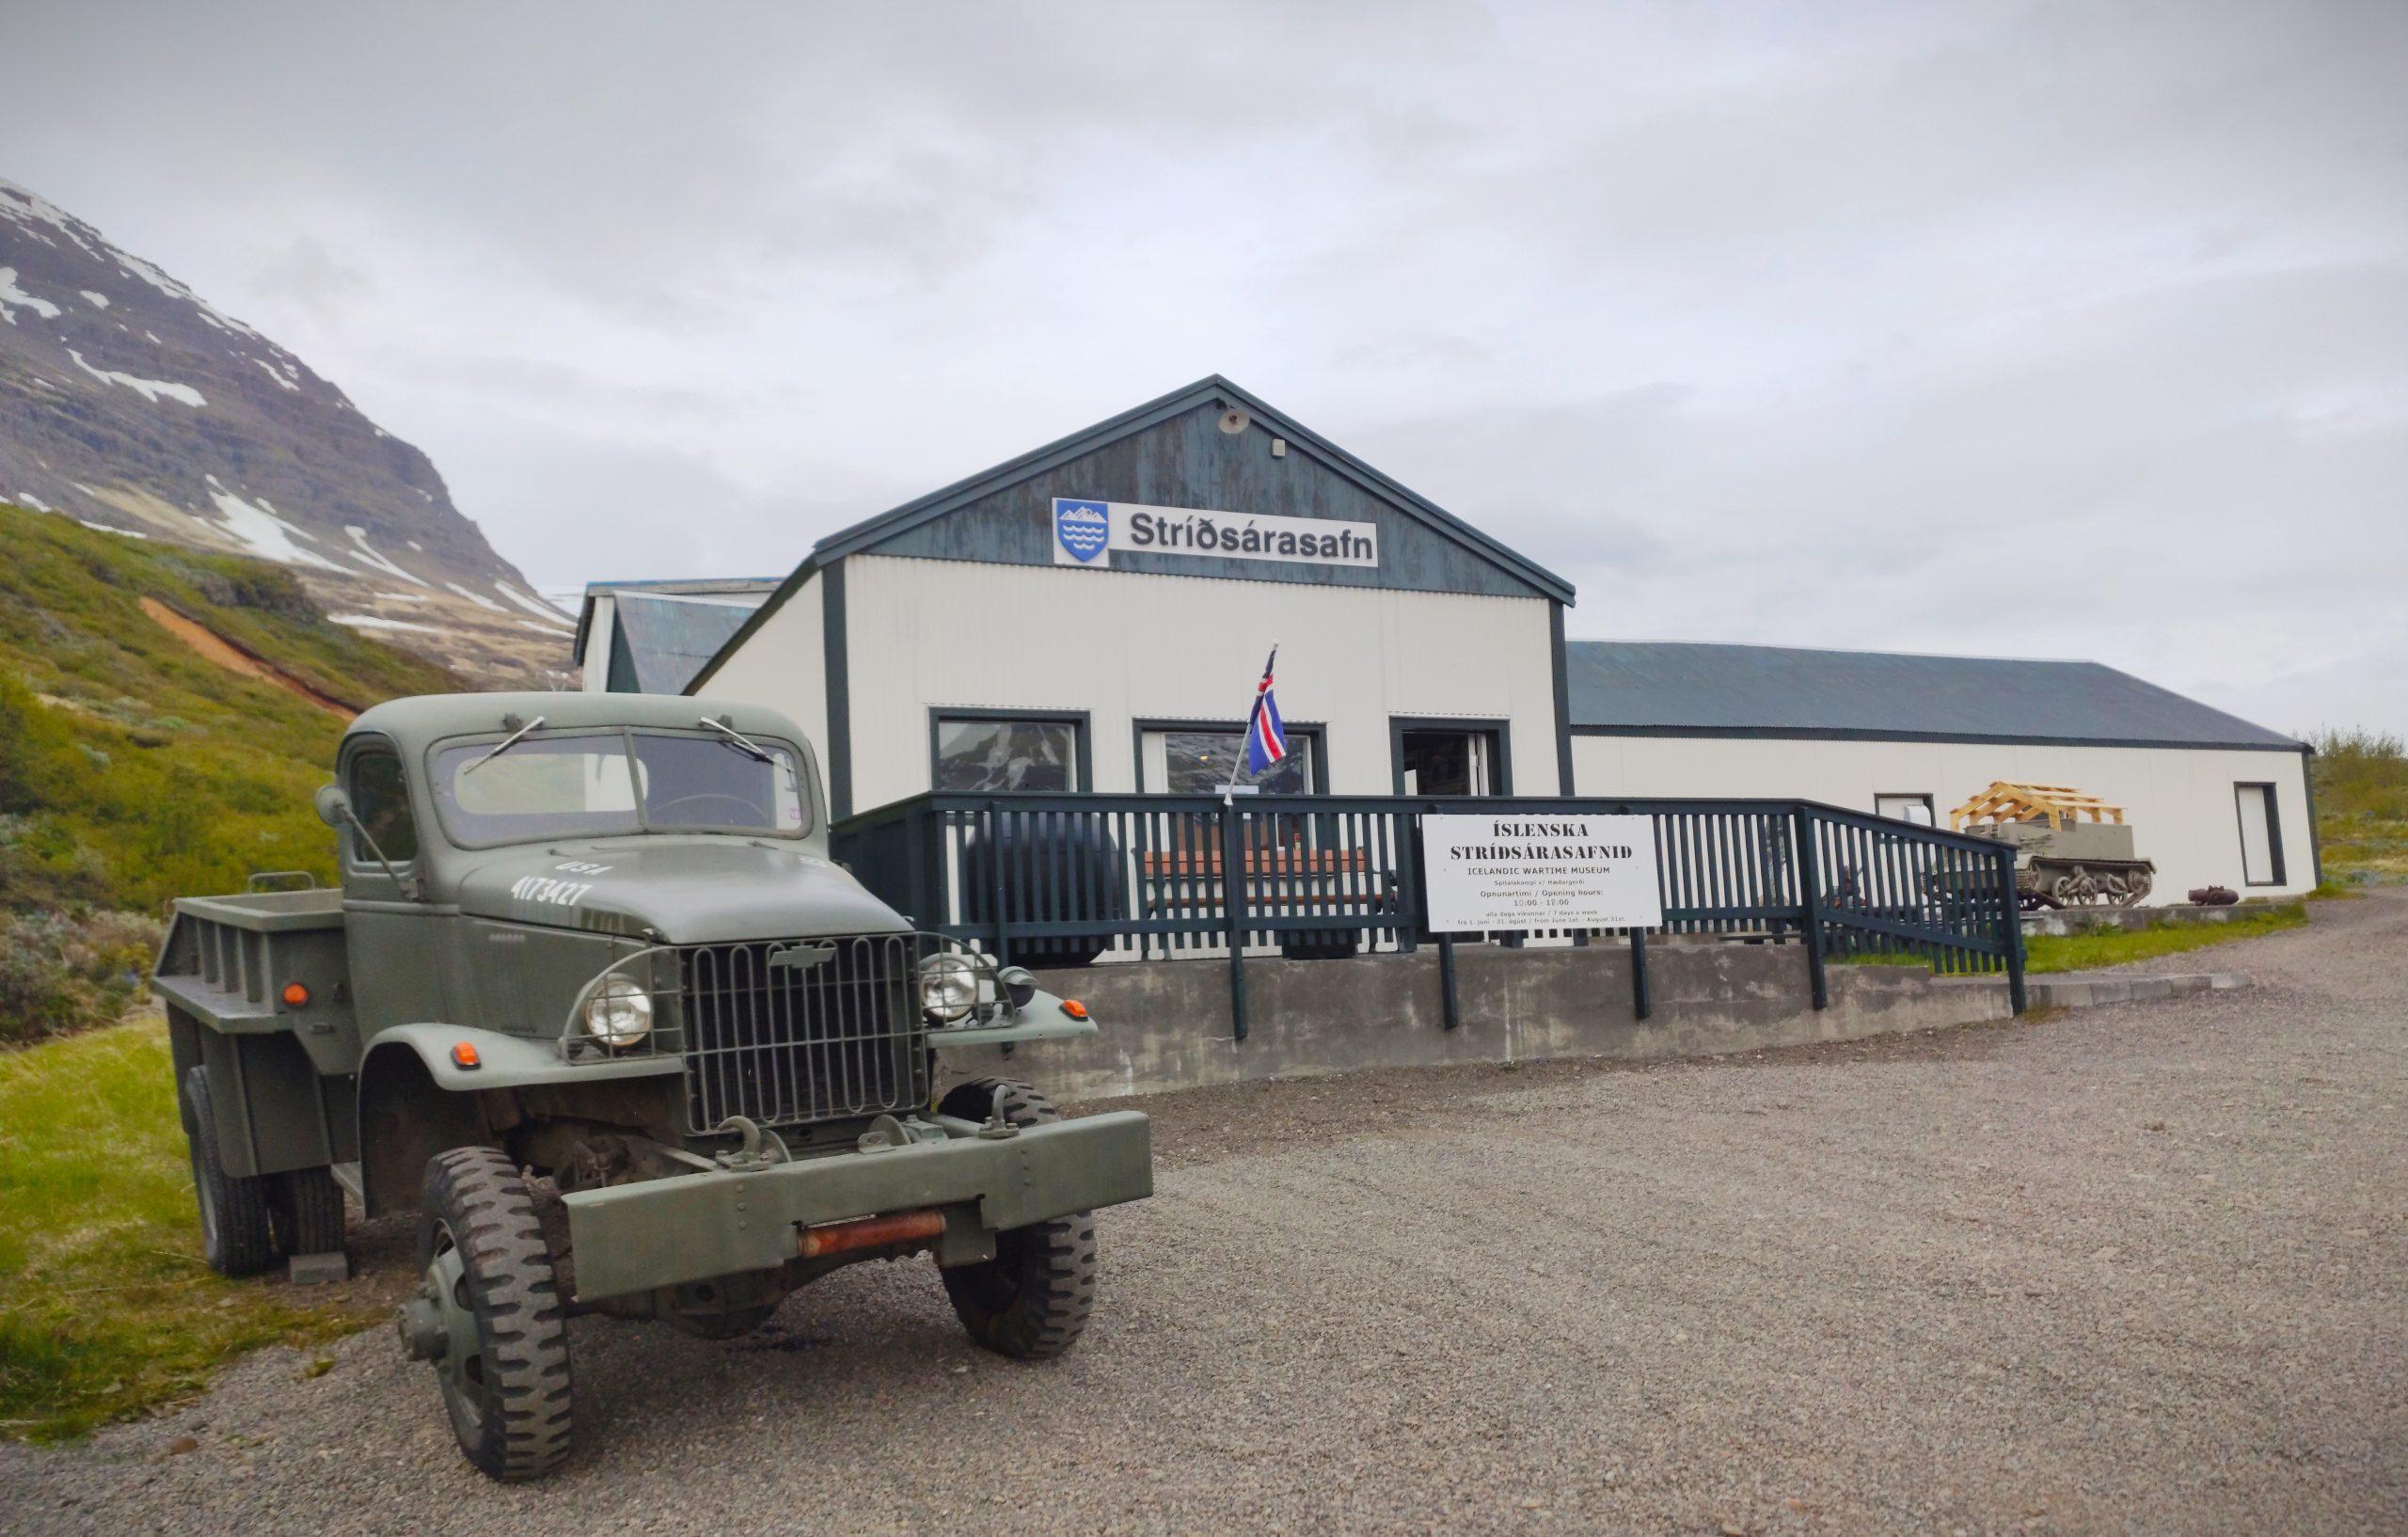 icelandic wartime museum front facade